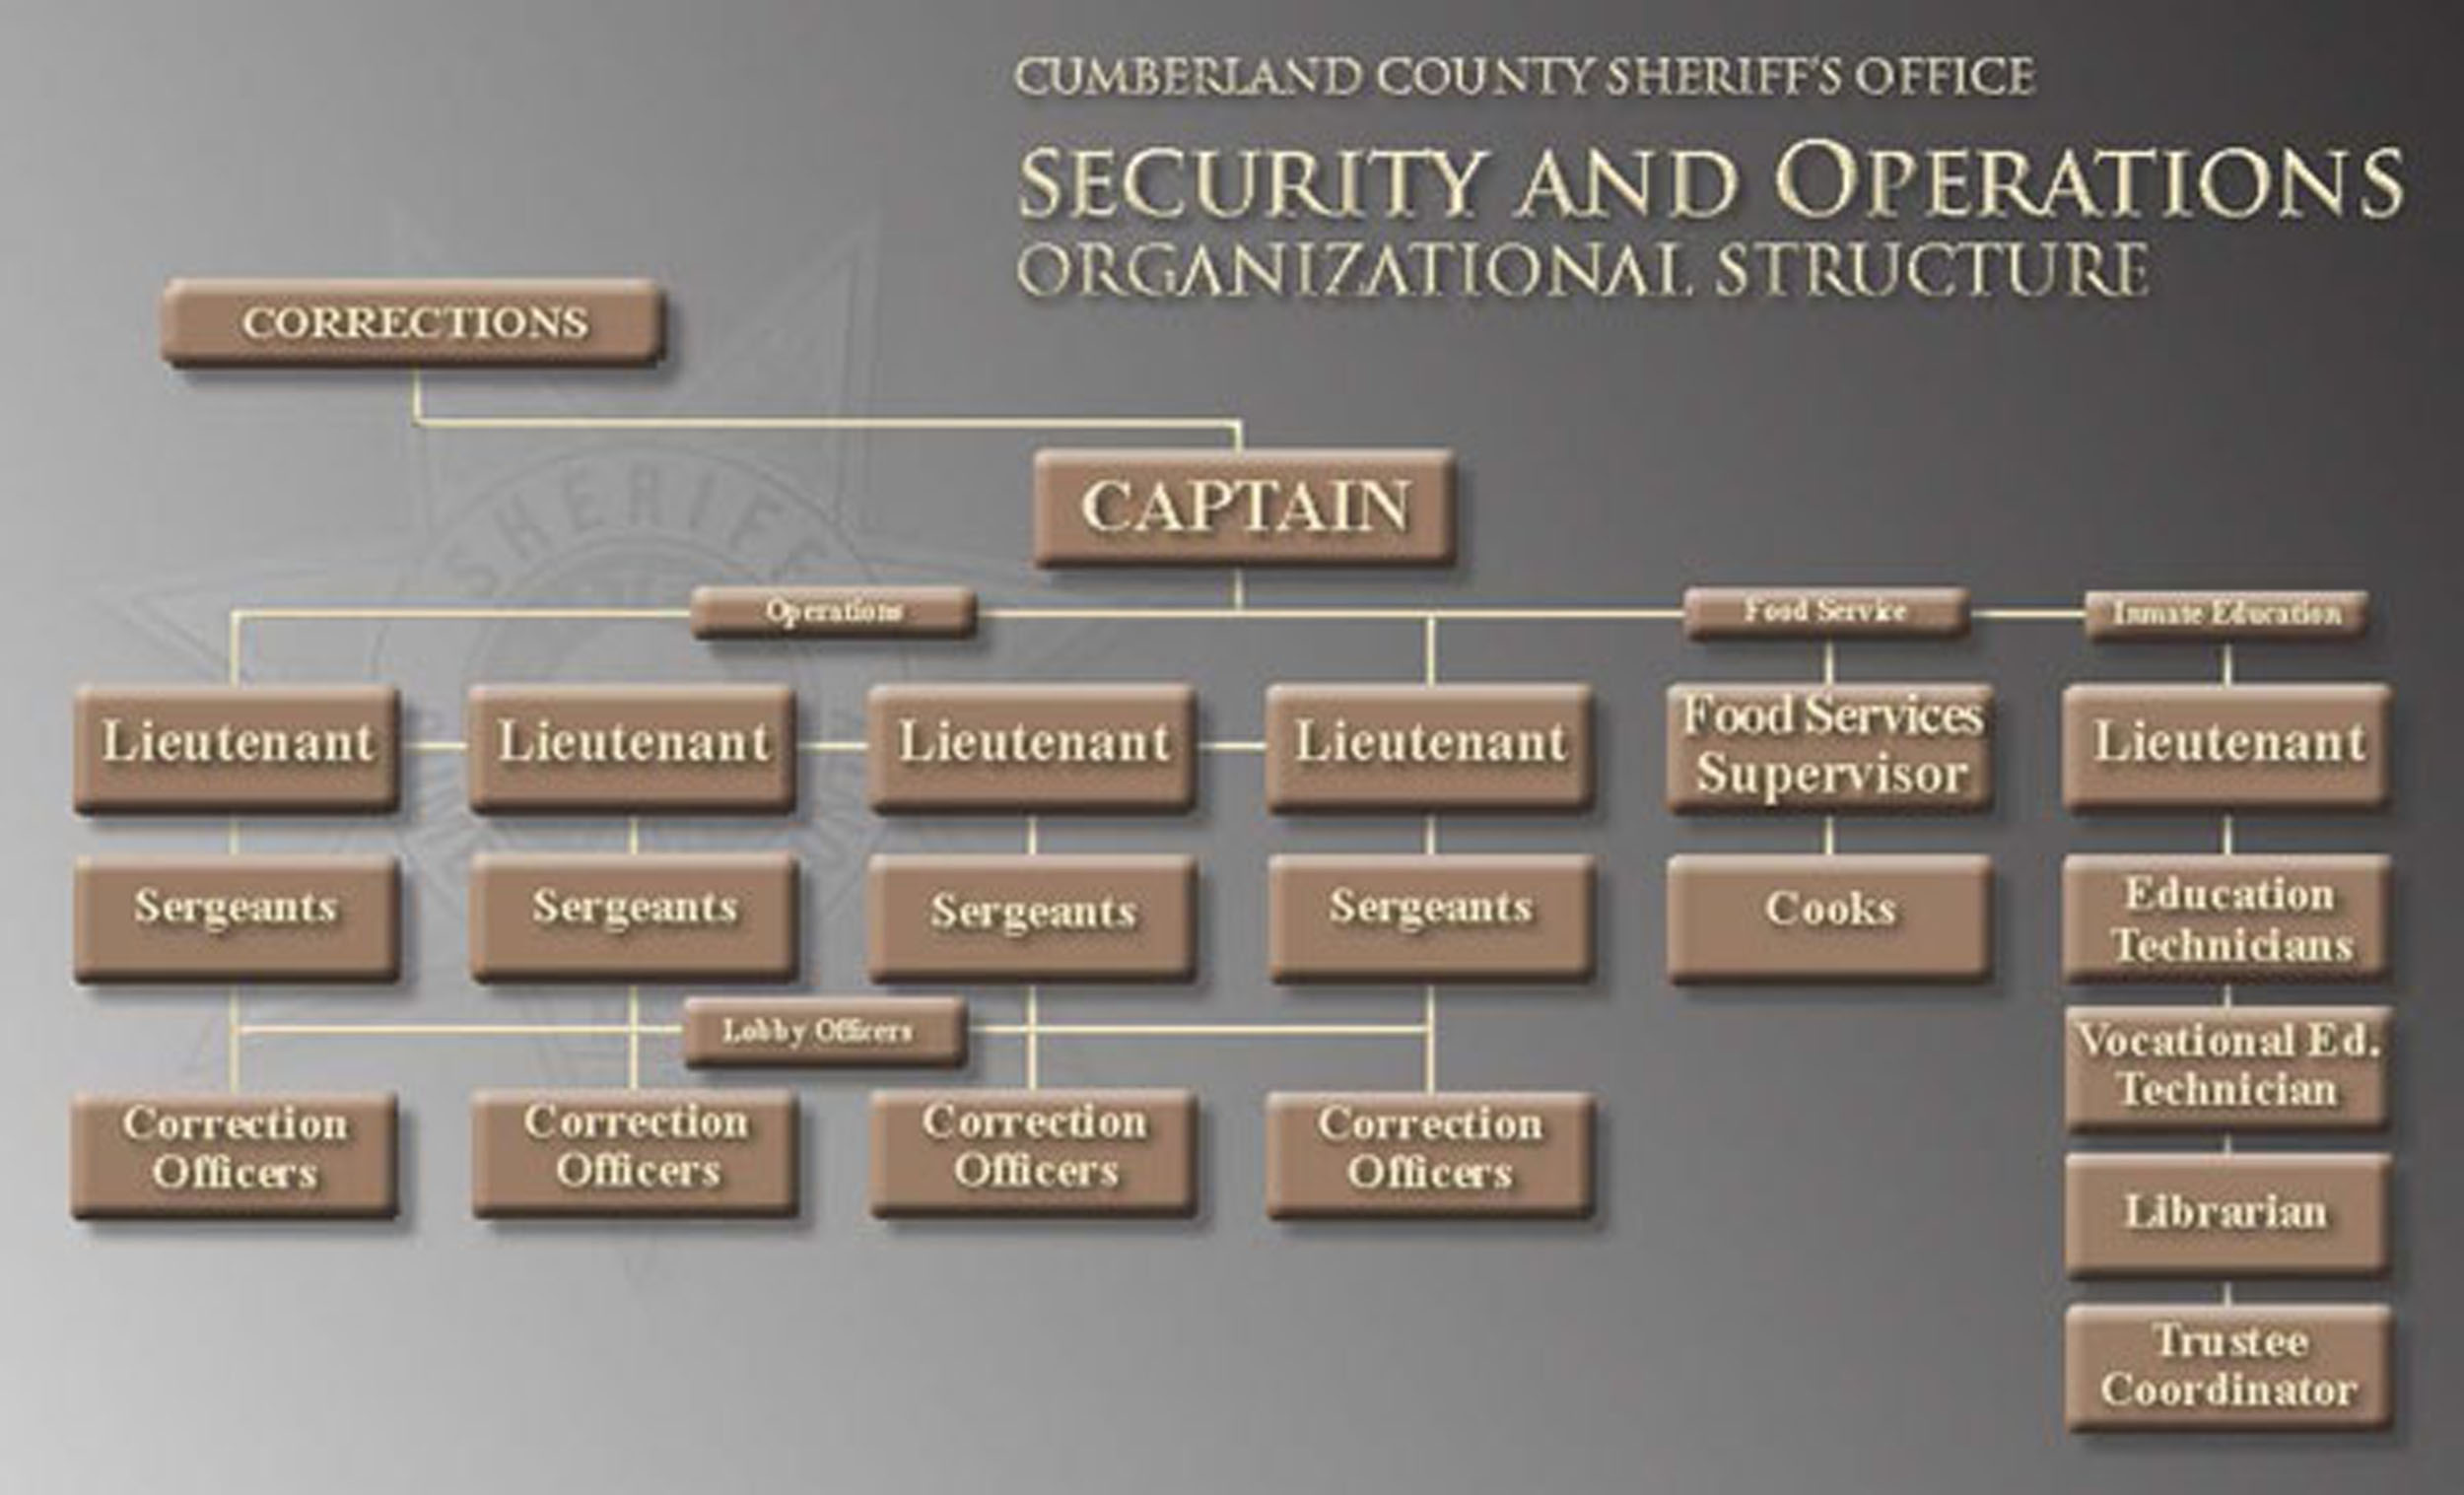 org chart Jail Security Operation 2014 600 dpi